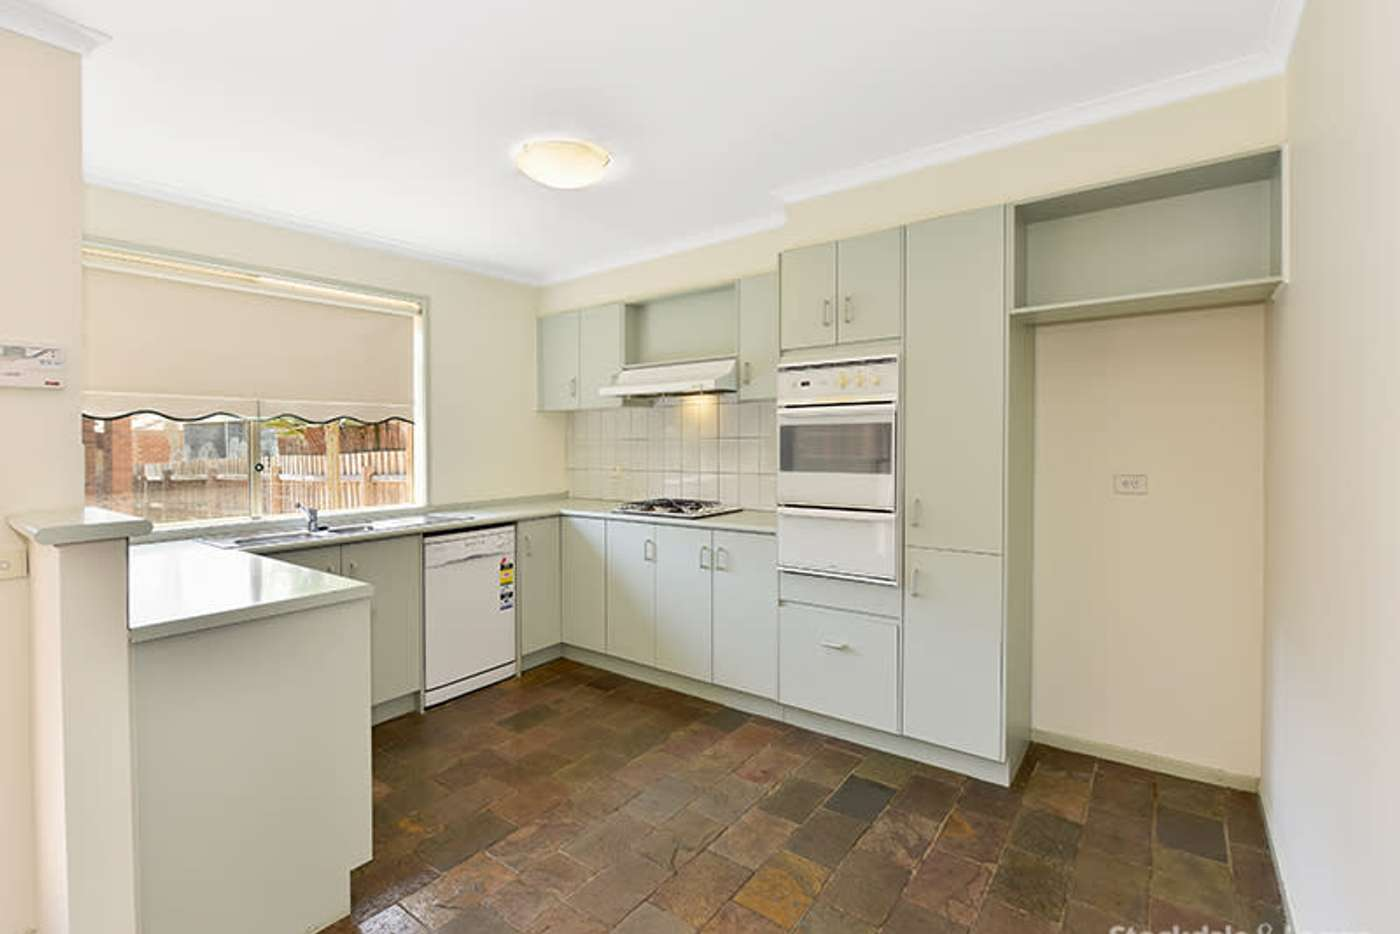 Seventh view of Homely house listing, 9 Fielders Walk, Westmeadows VIC 3049